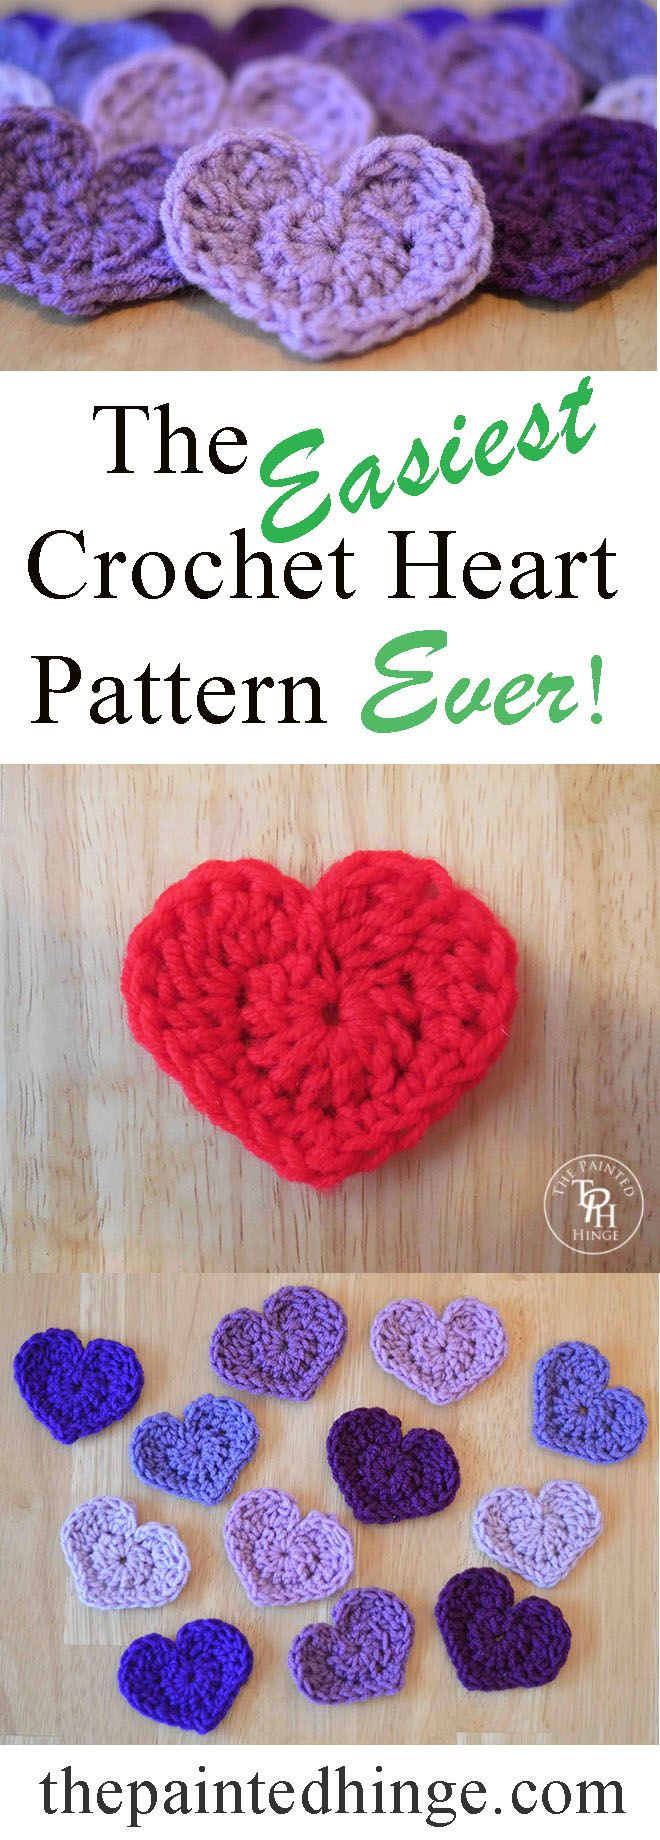 A free and easy crochet heart pattern for beginner-level crocheters!